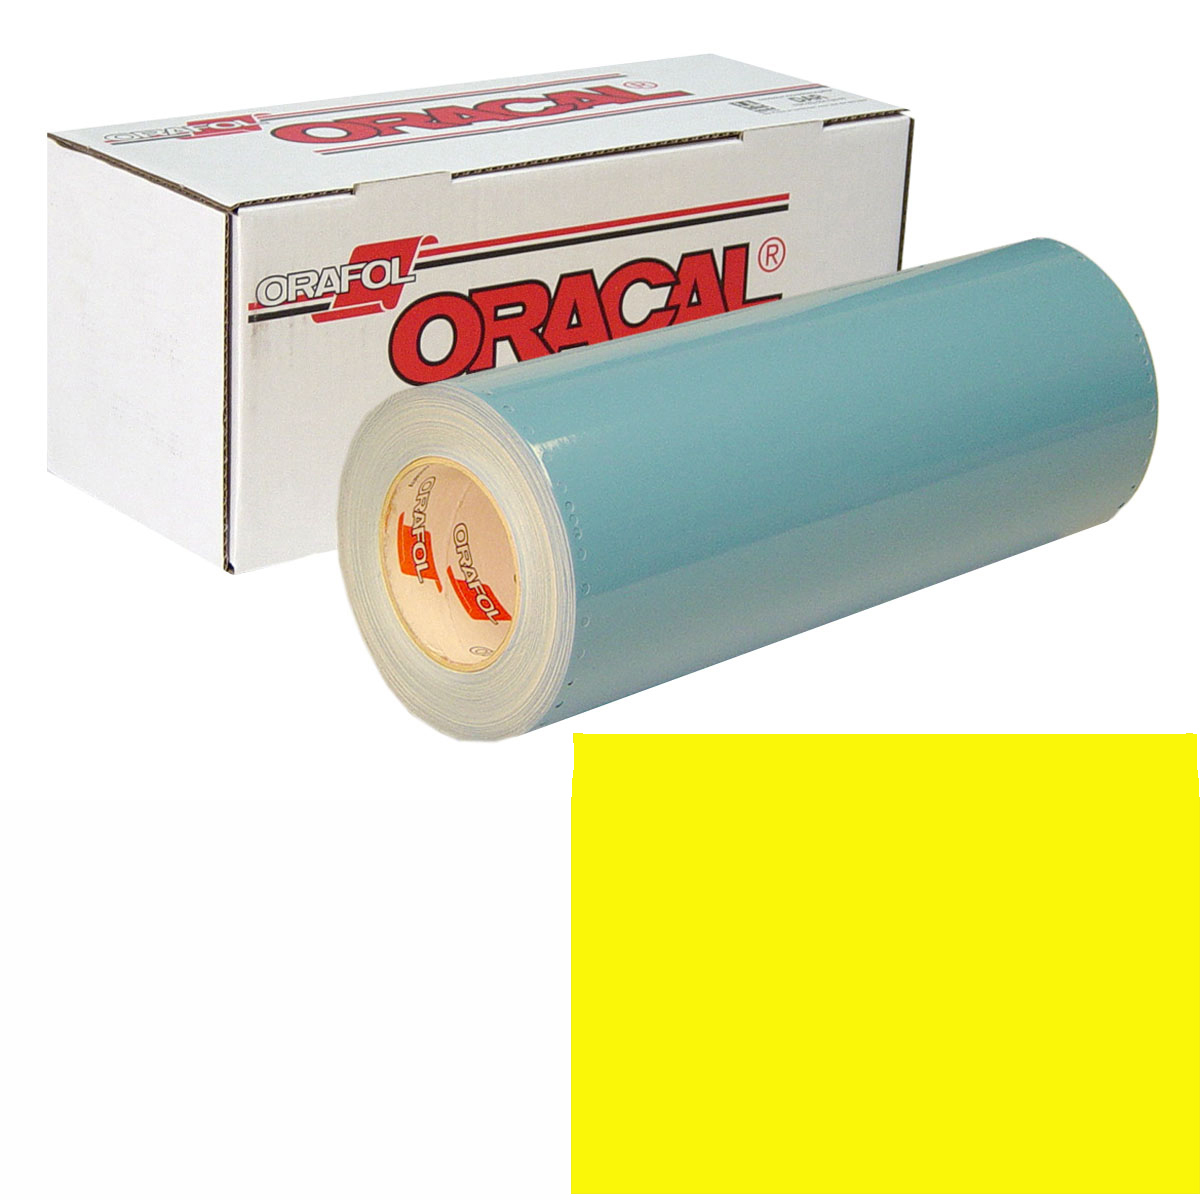 ORACAL 751 Unp 24In X 50Yd 025 Brimstone Yell